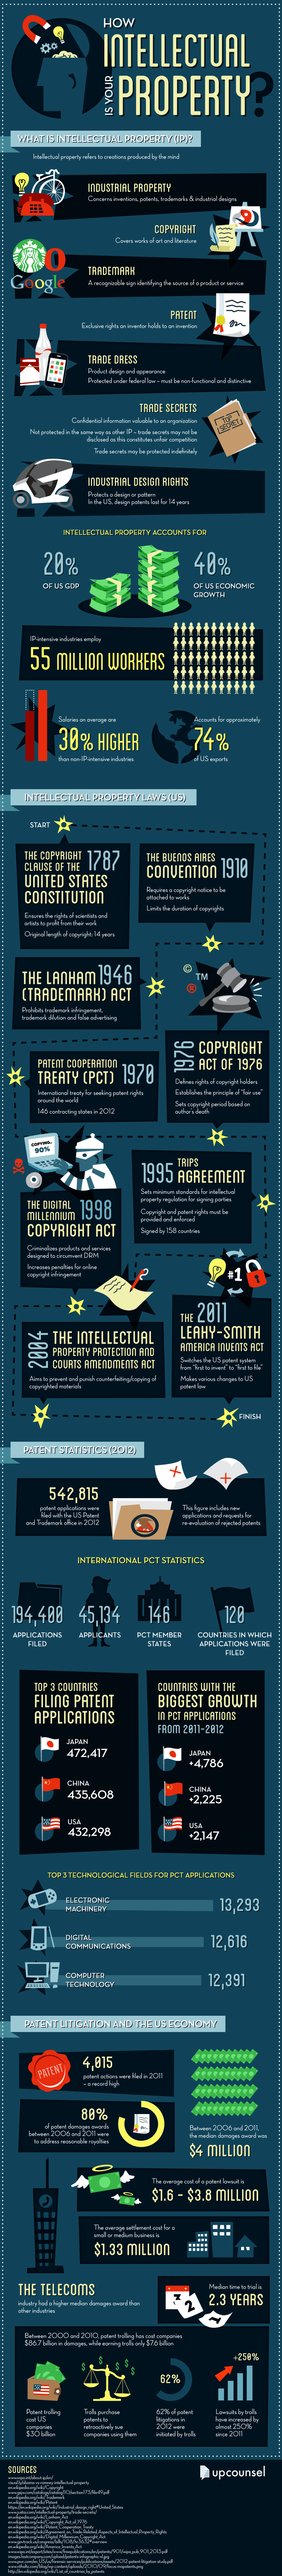 intellectual-property-patent-information-infographic-2